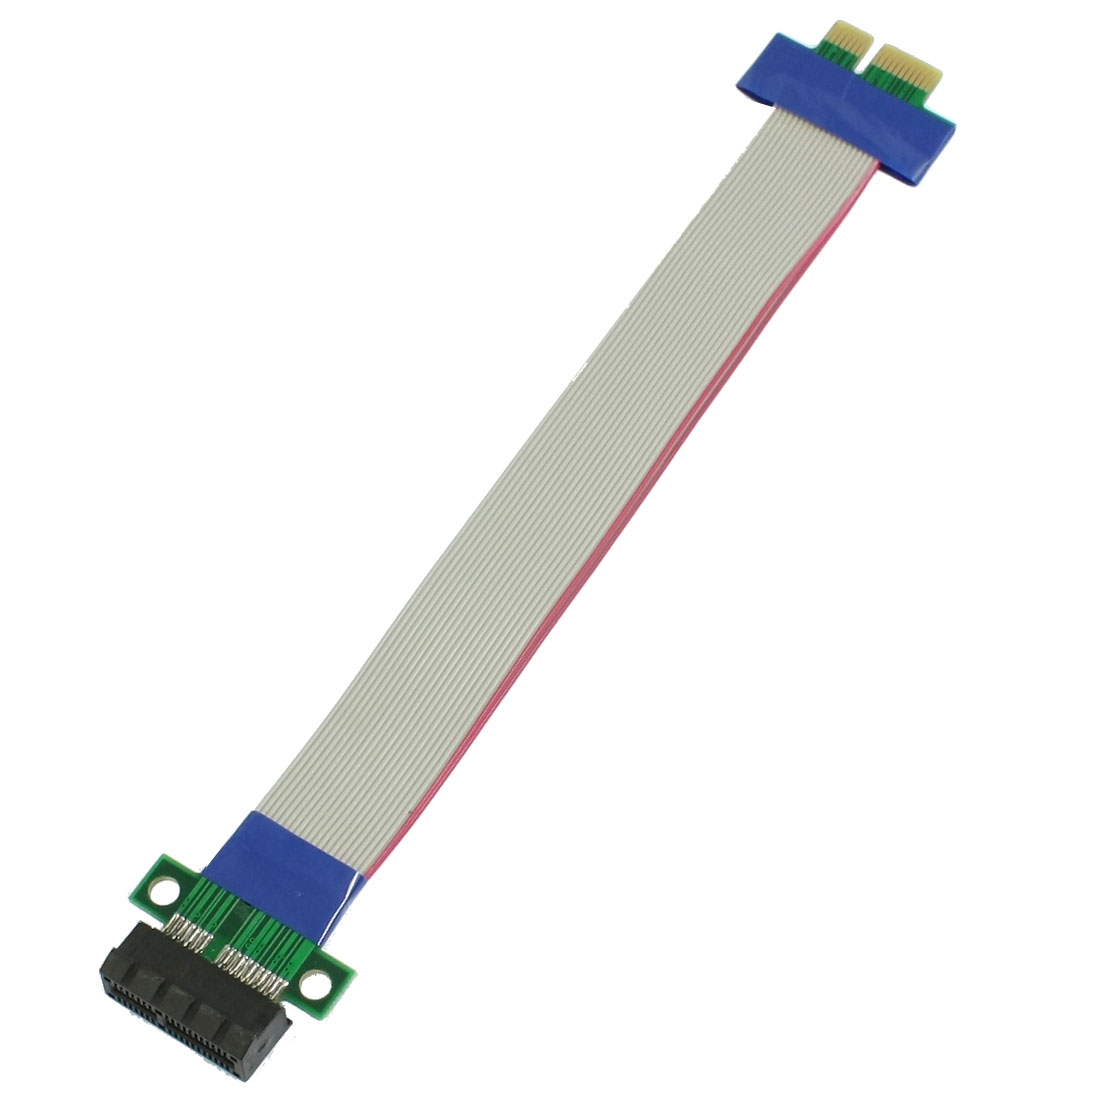 PCI-E 1X Slot Riser Card Extender Extension Ribbon Flex Cable Adapter